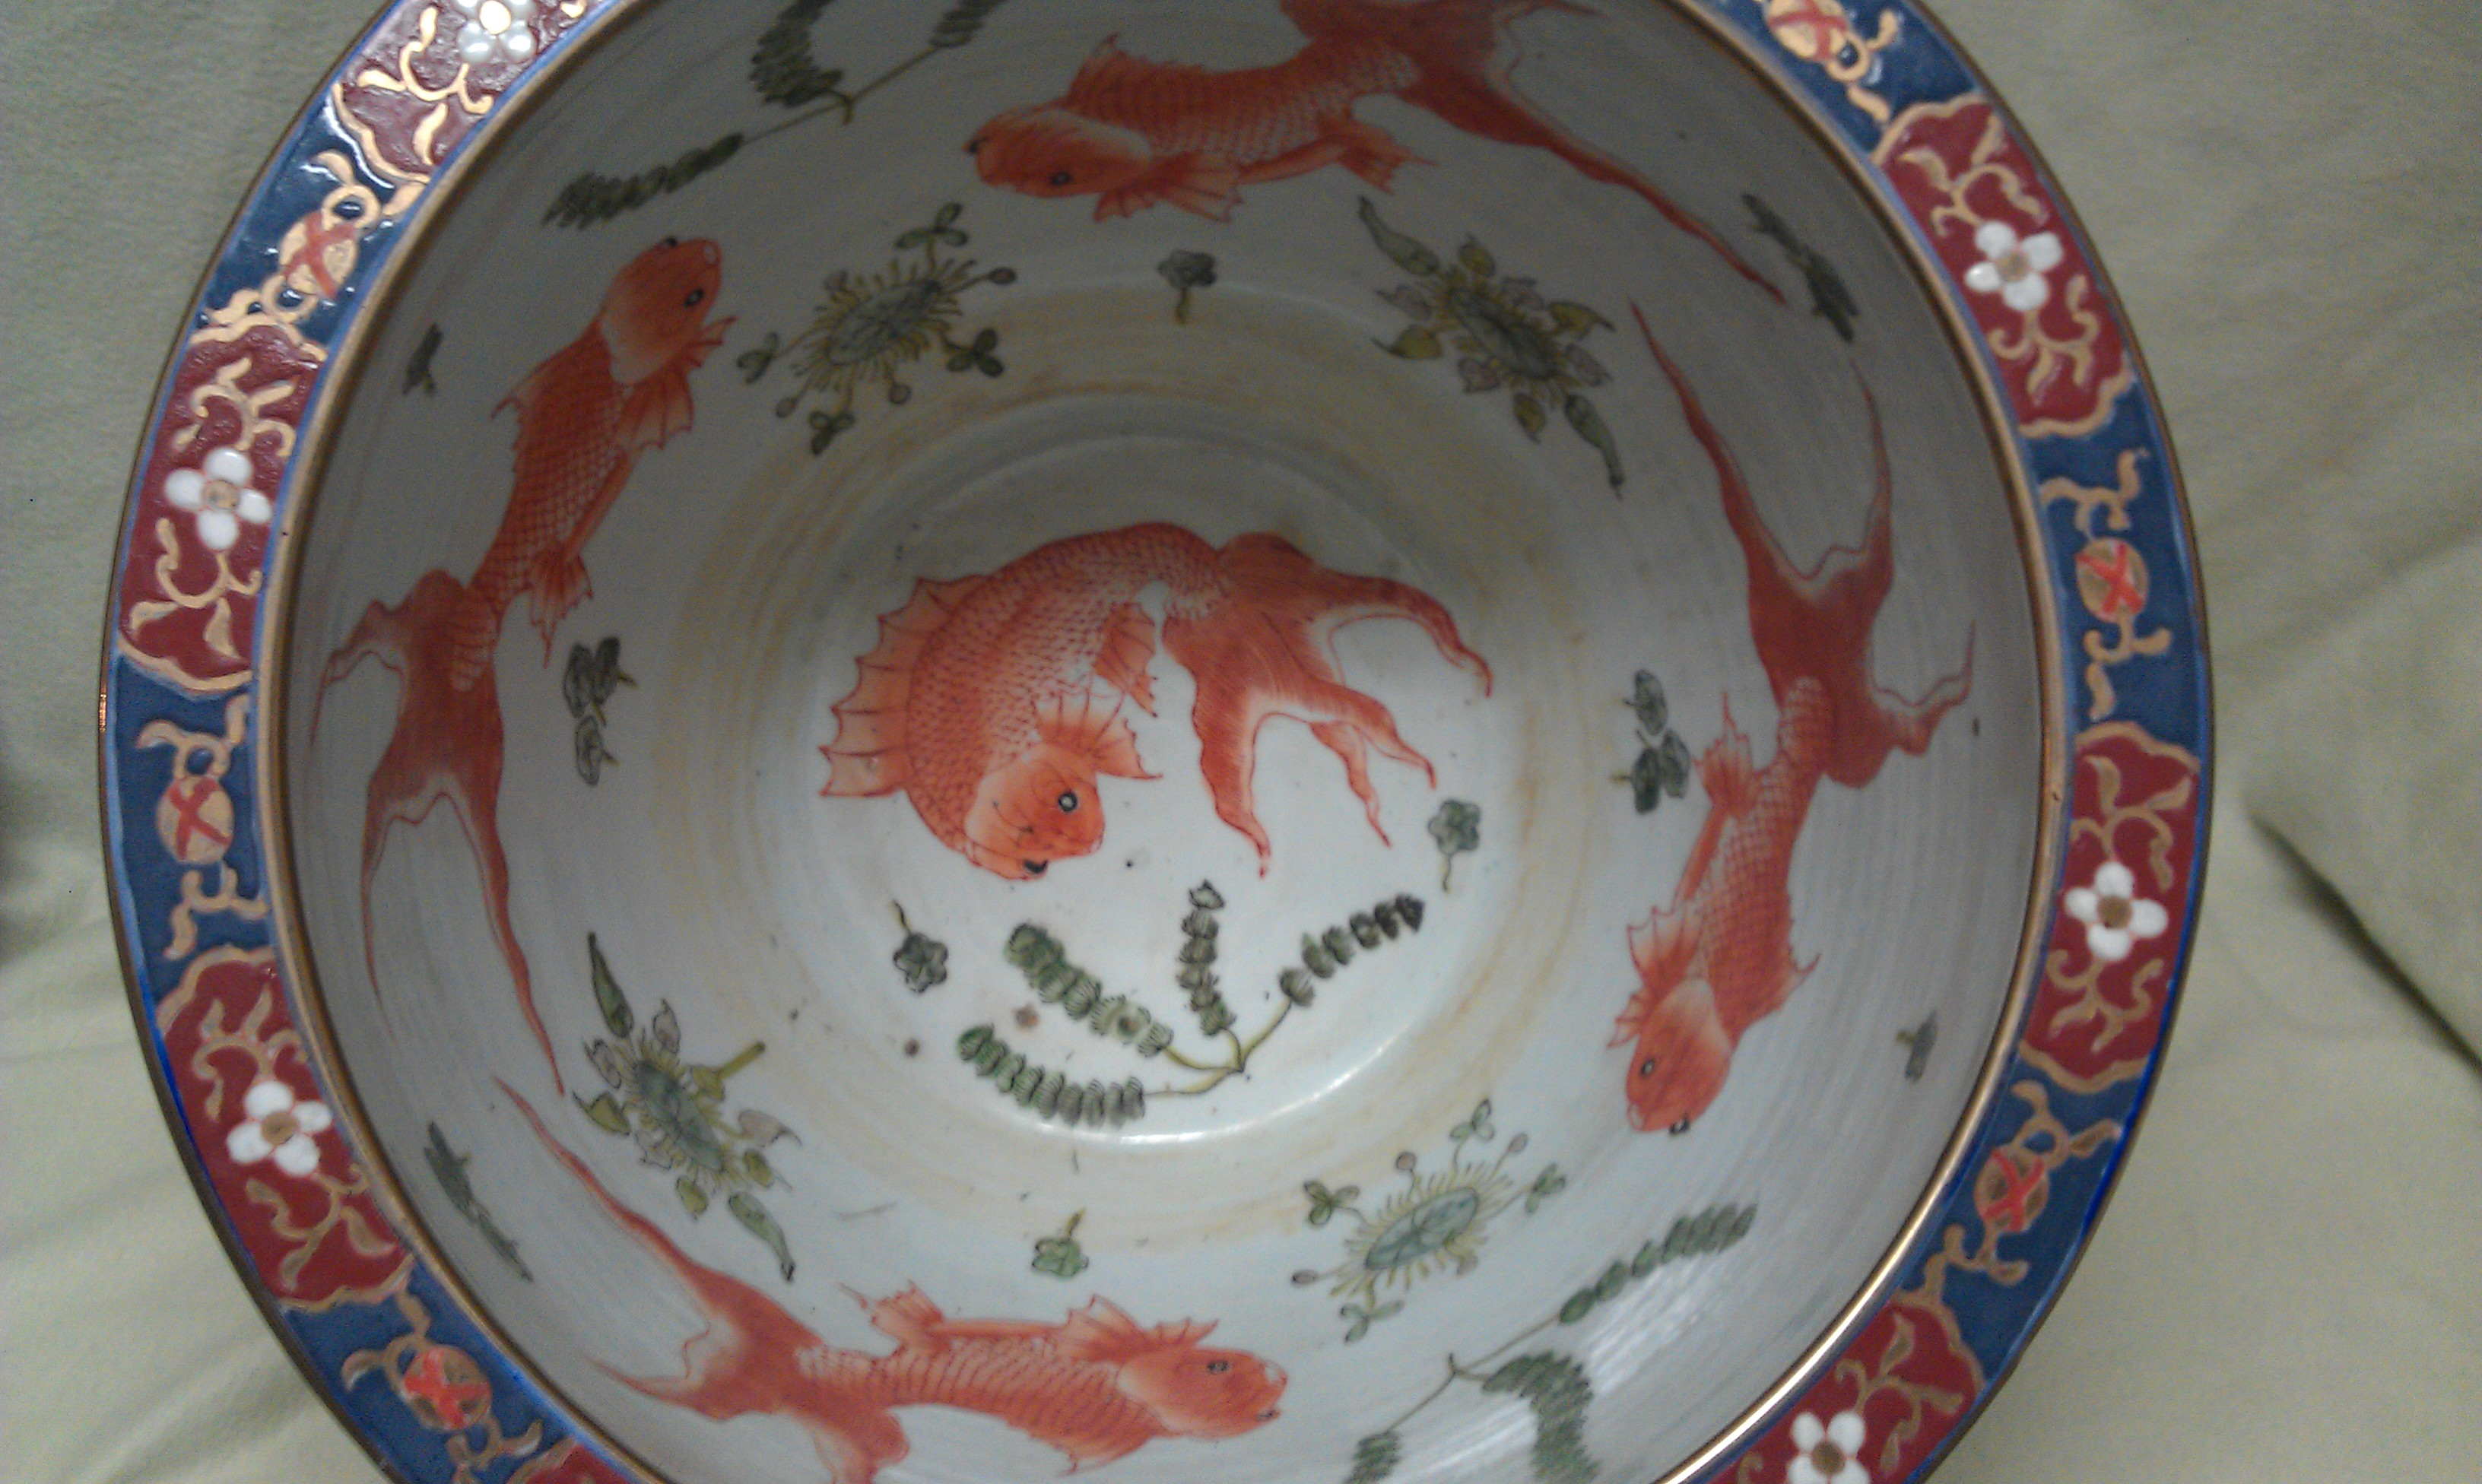 Help Identifying This Large Fishbowl Planter Hand Painted With Koi